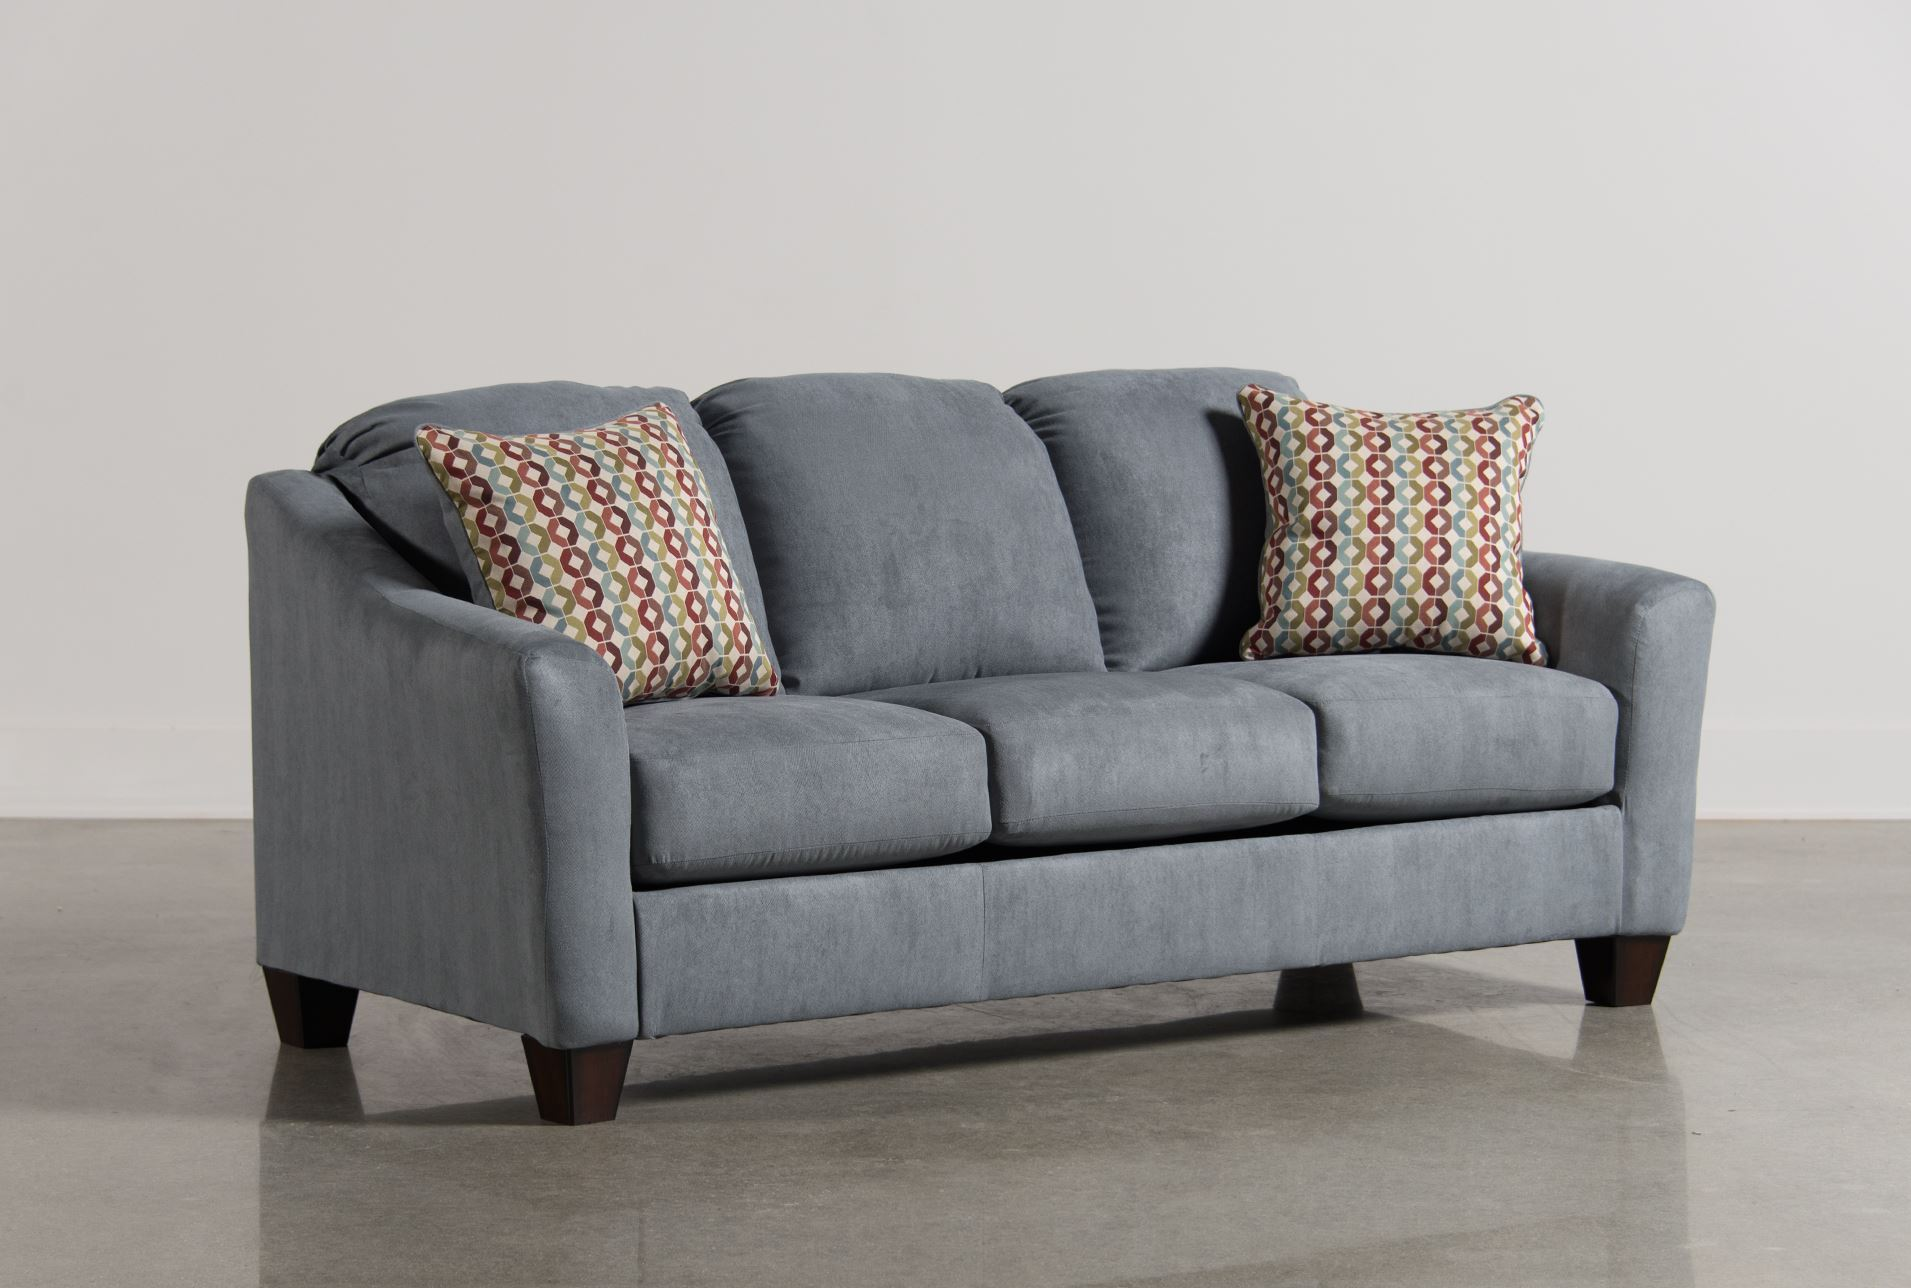 hannin lagoon sofa shop your way online shopping earn points on tools appliances. Black Bedroom Furniture Sets. Home Design Ideas